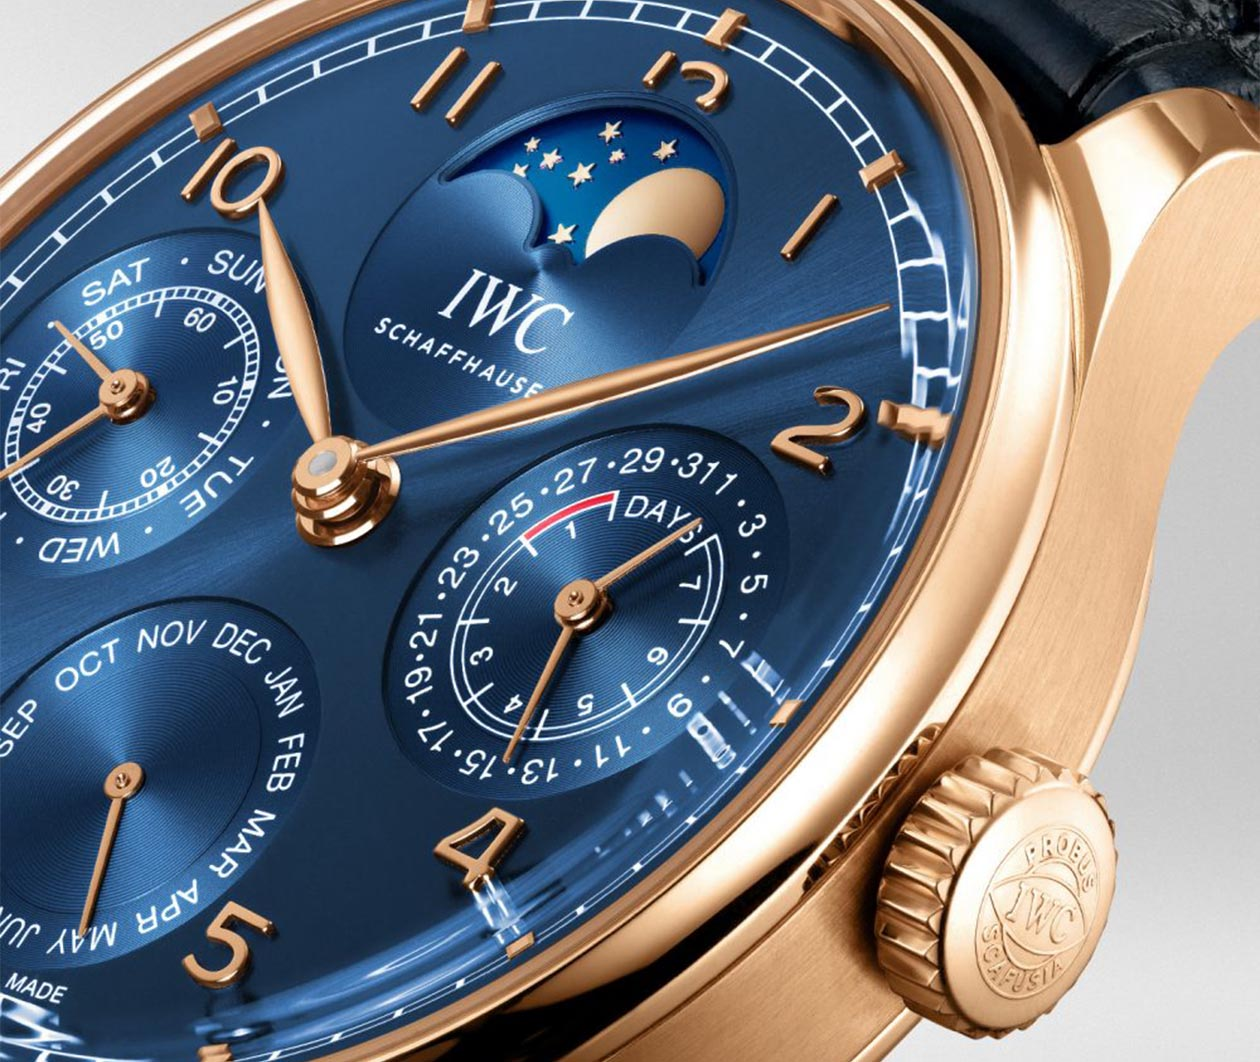 IWC Portugieser PerpetualCalendarBoutiqueEdition IW503312 Carousel 3 FINAL